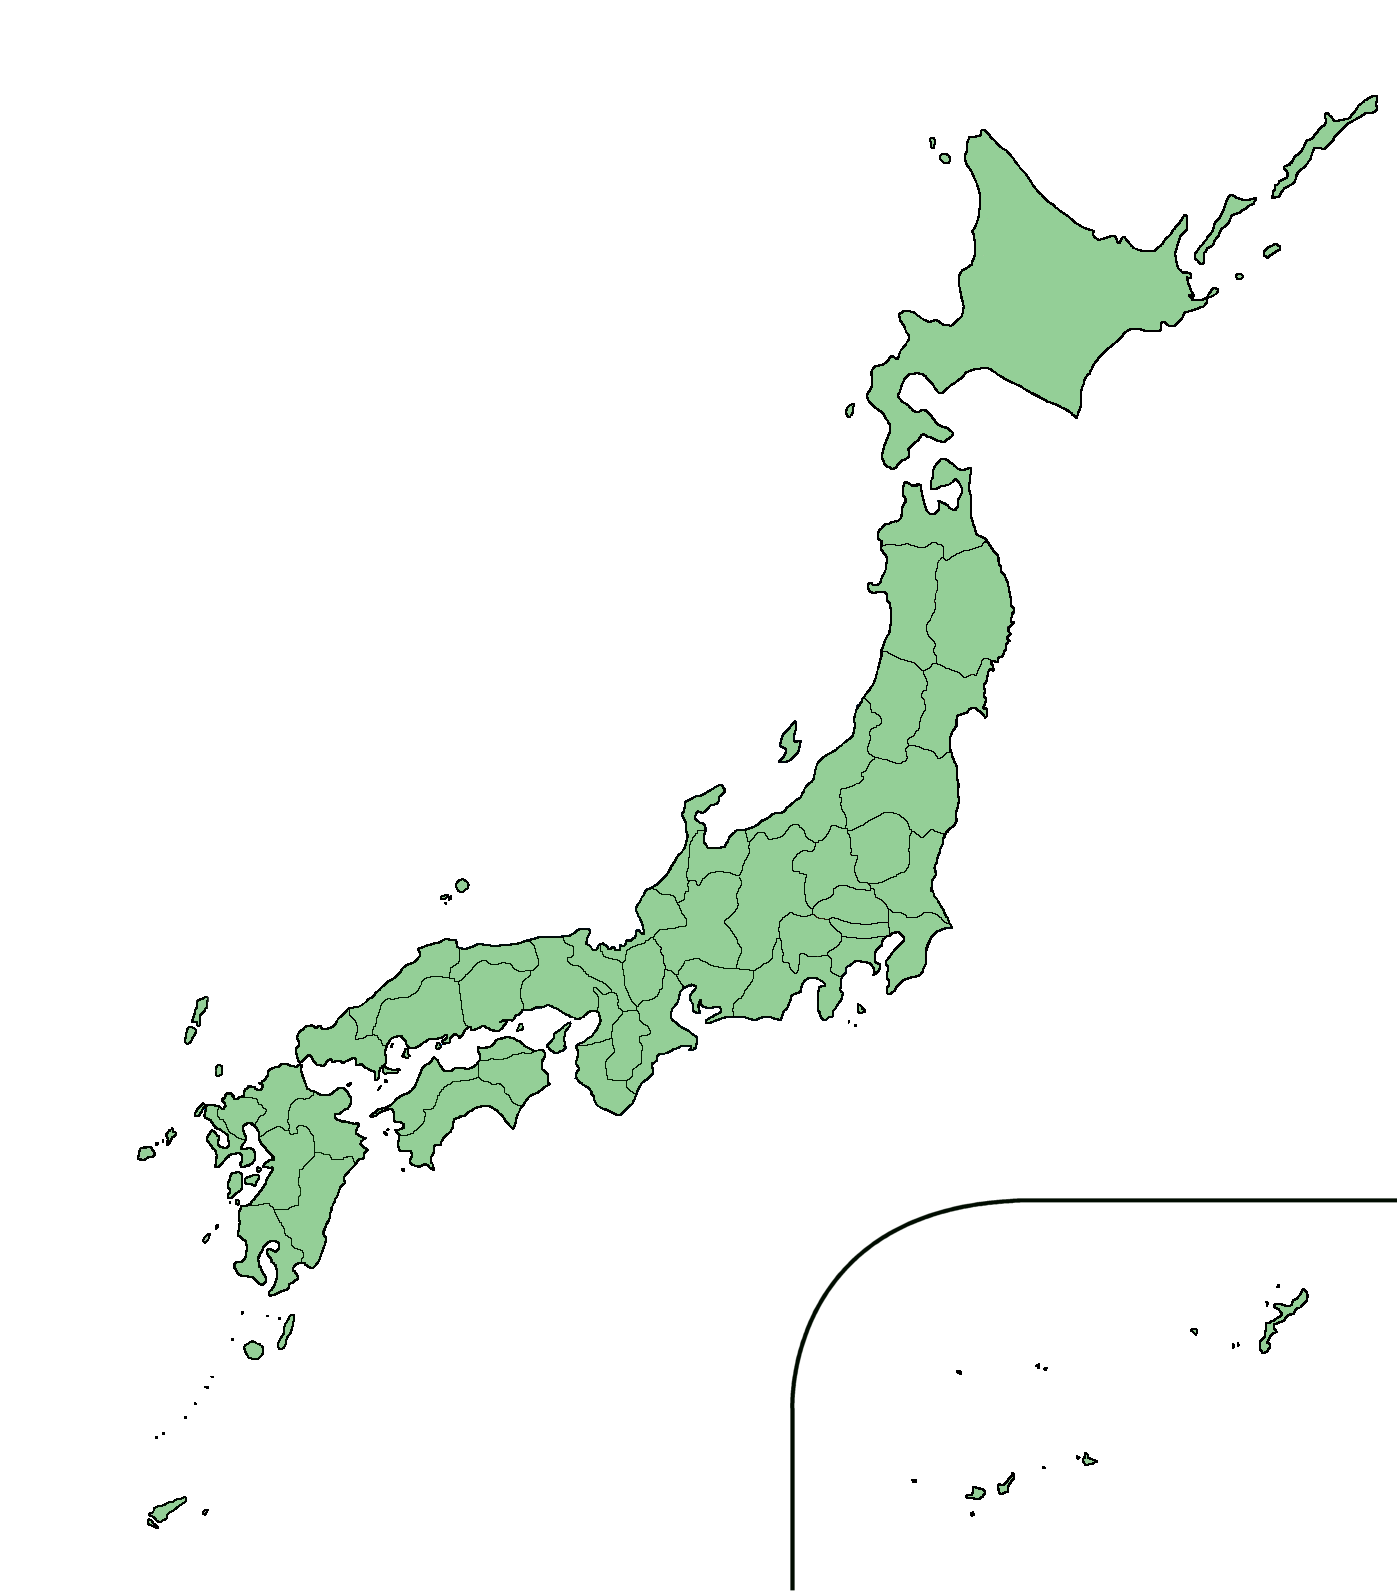 Image Japan Large Mappng Implausable Alternate History Wiki - Japan map png